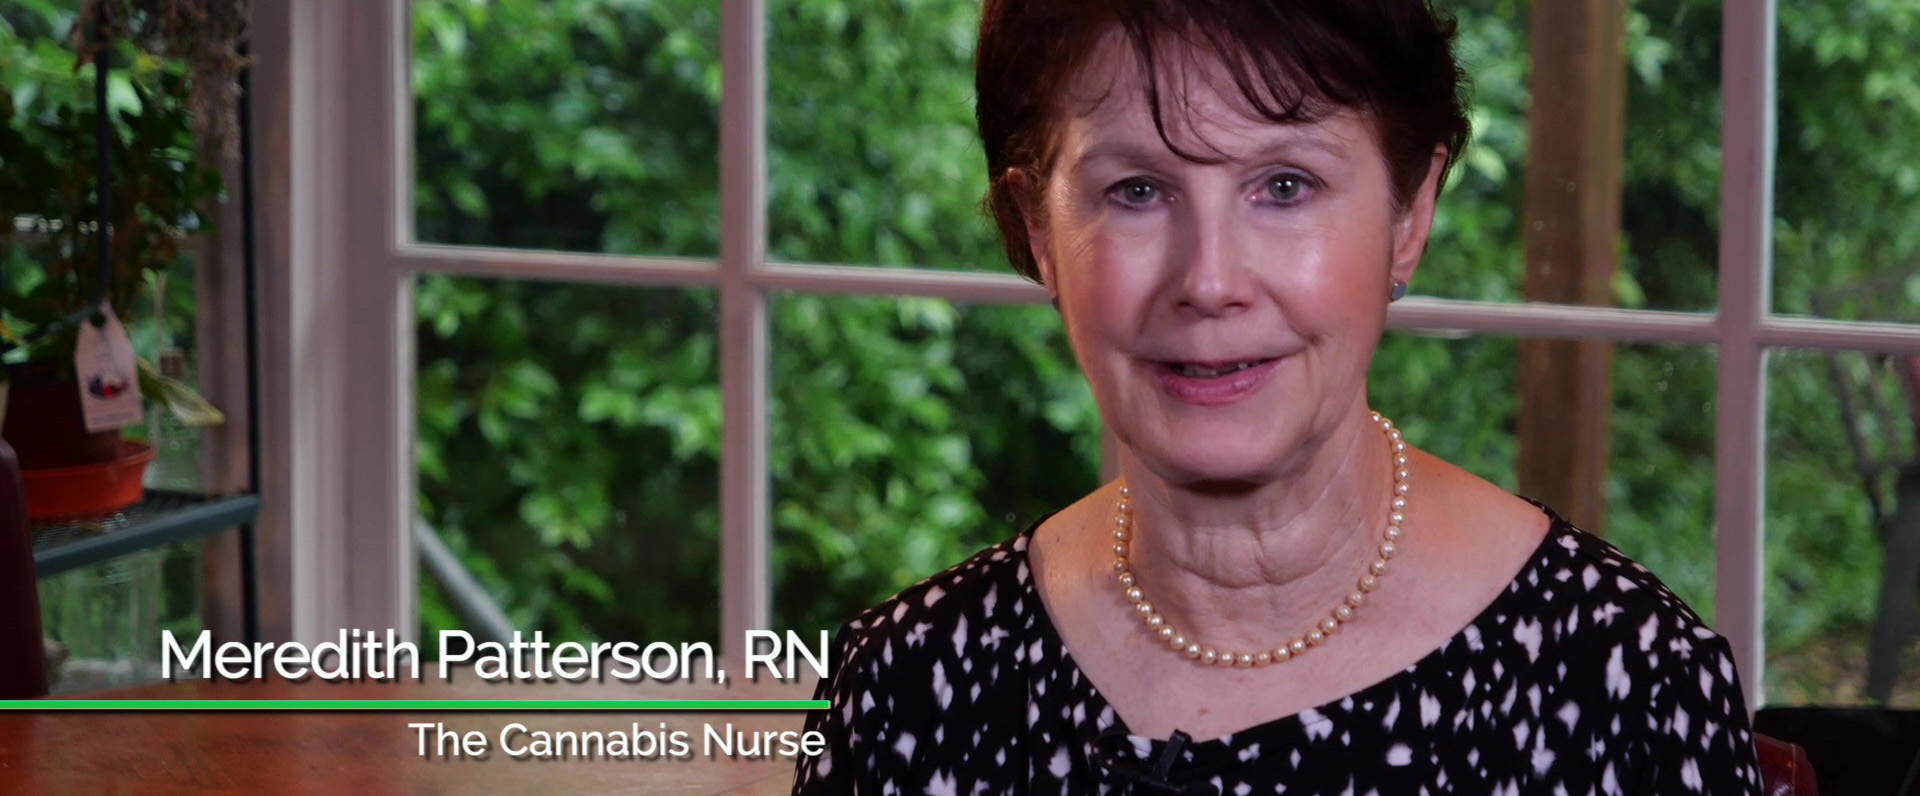 Meet the Cannabis Brain Nurse, Meredith Patterson, and join her journey to learn about the benefits of medical cannabis!